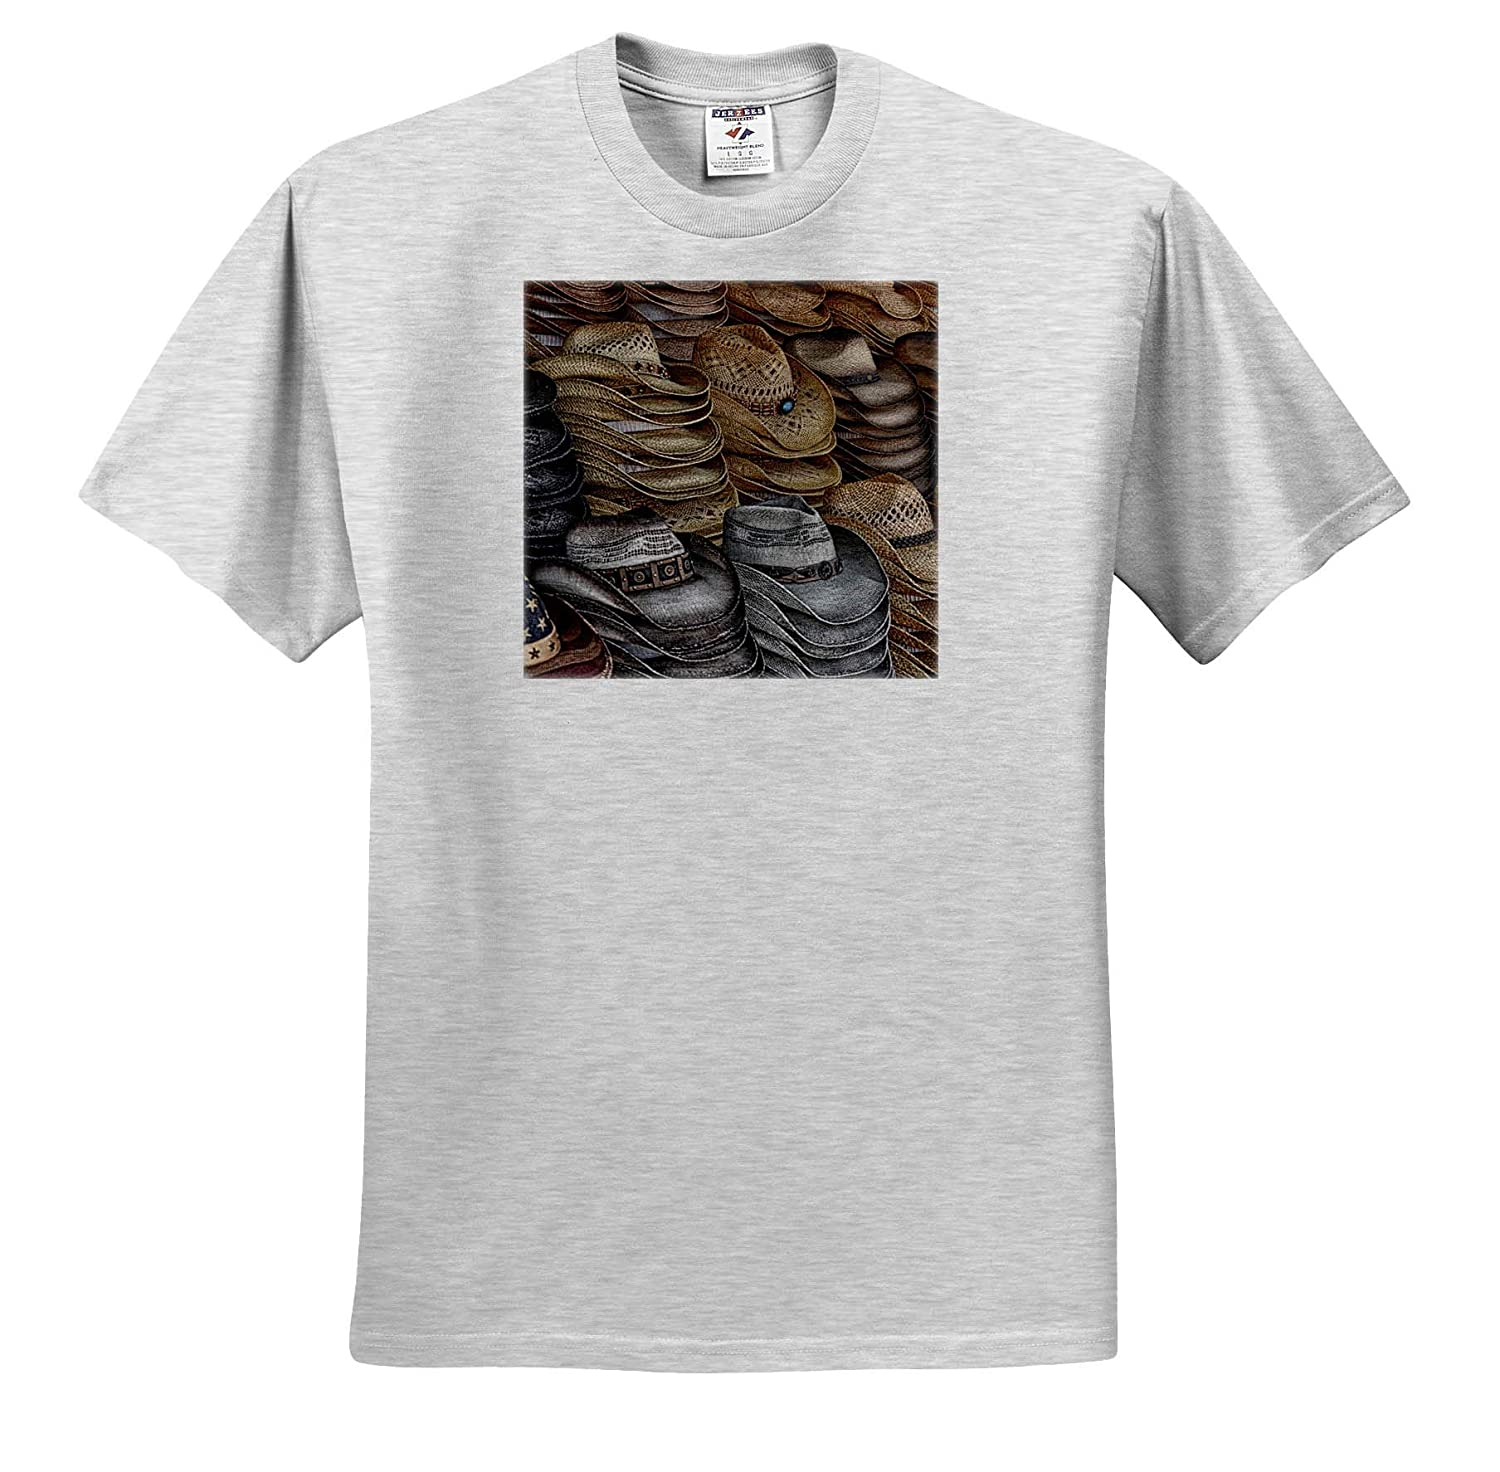 3dRose Susans Zoo Crew Scenery T-Shirts Stacks of Straw cowbody Western Hats